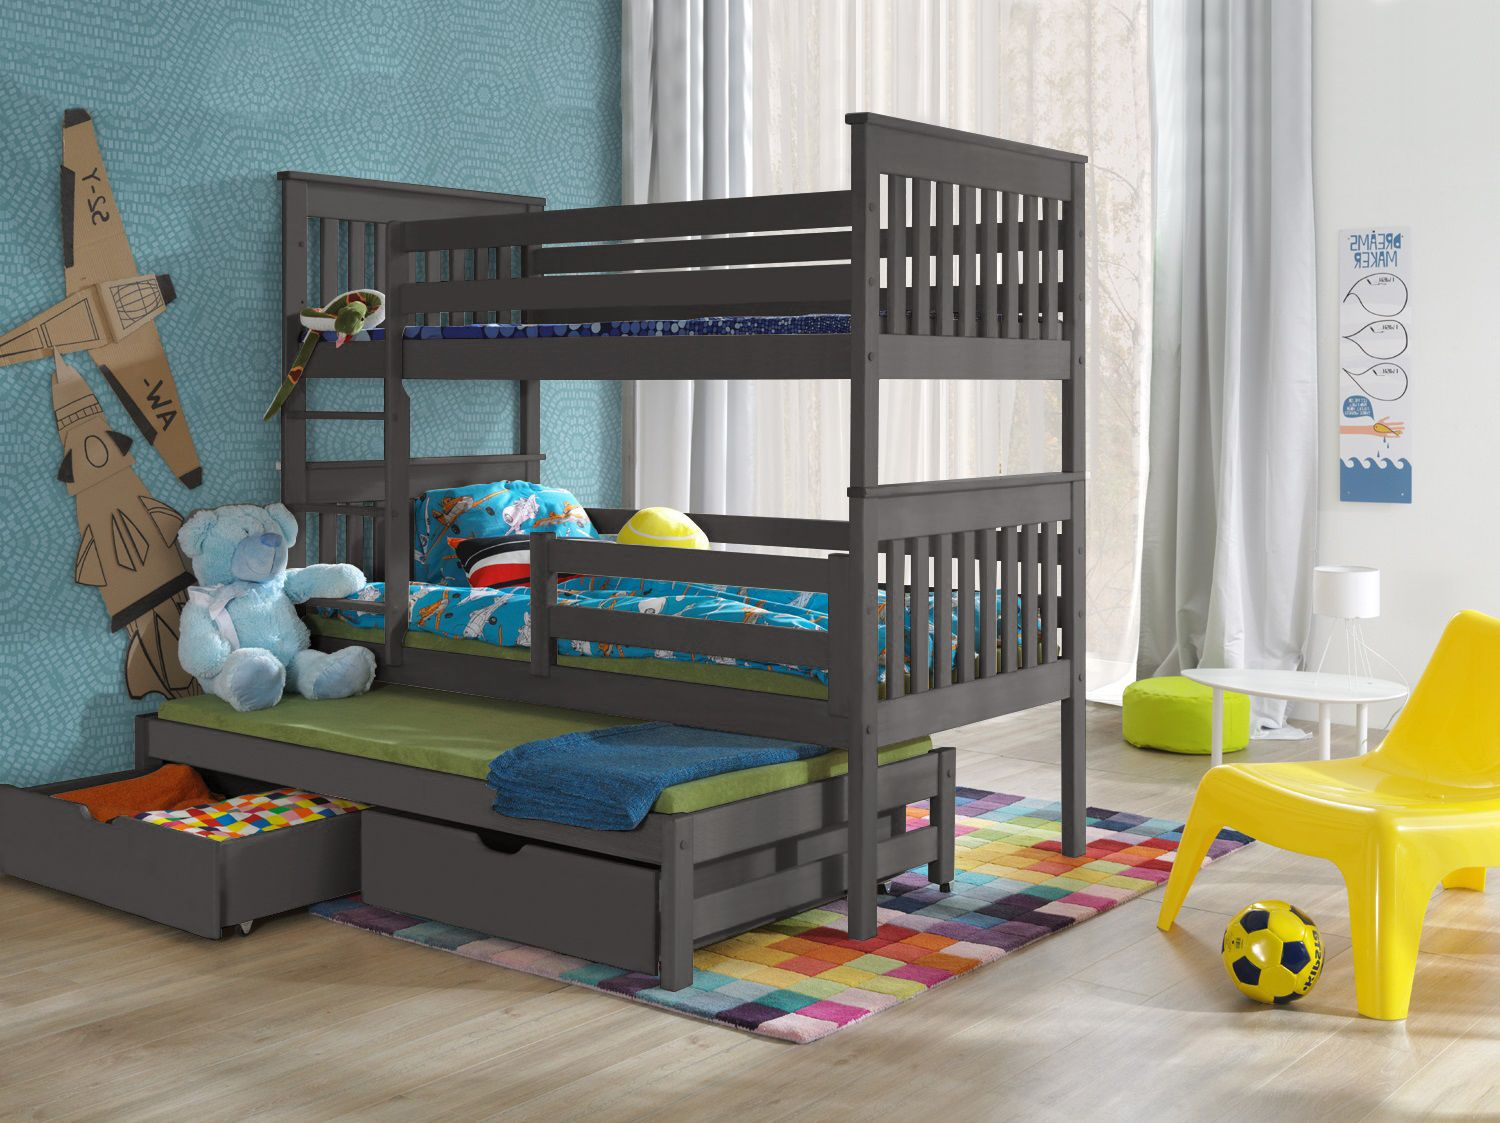 Triple Grey Bunk Beds For Sale Online High Sleeper With Trundle Guest Bed